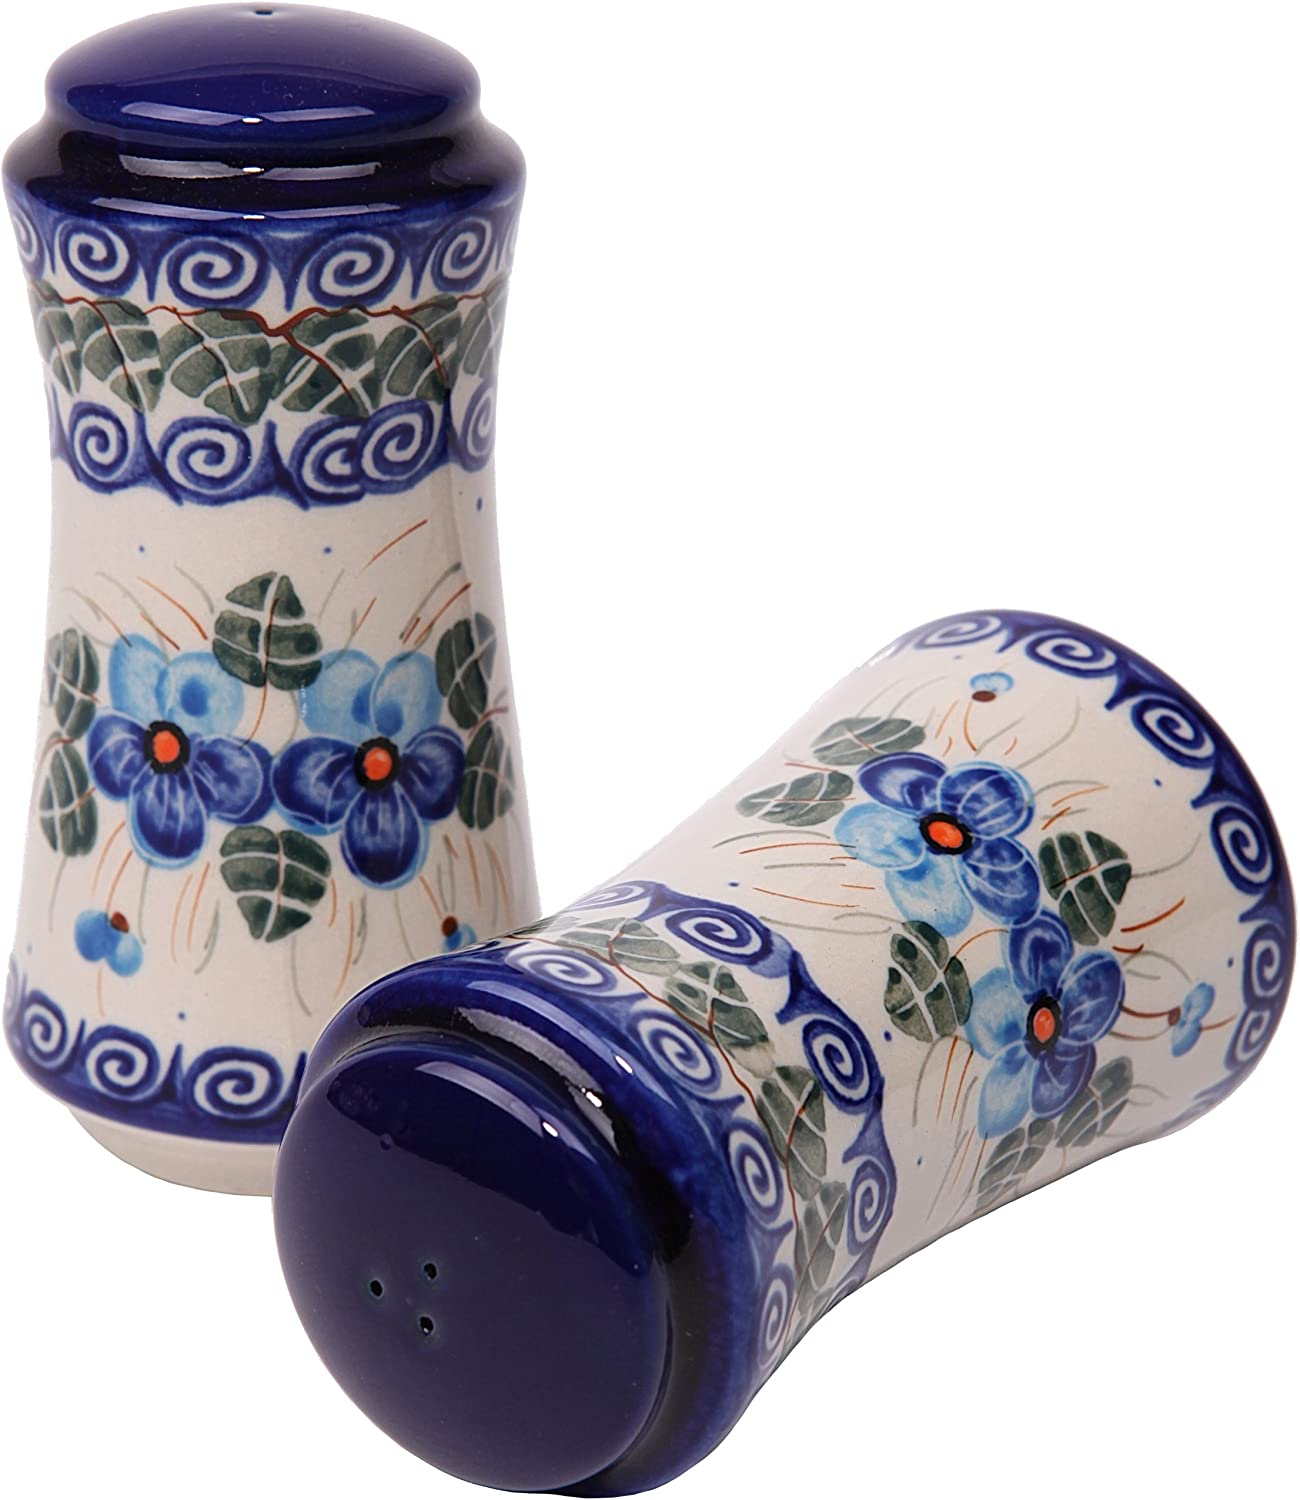 Polish Pottery Ceramika Boleslawiec, 1313/162, Salt and Pepper Milano, 4 3/4 by 2 1/4 Inches in Diameter - 9 Tablespoons Each, Royal Blue Patterns with Blue Pansy Flower Motif